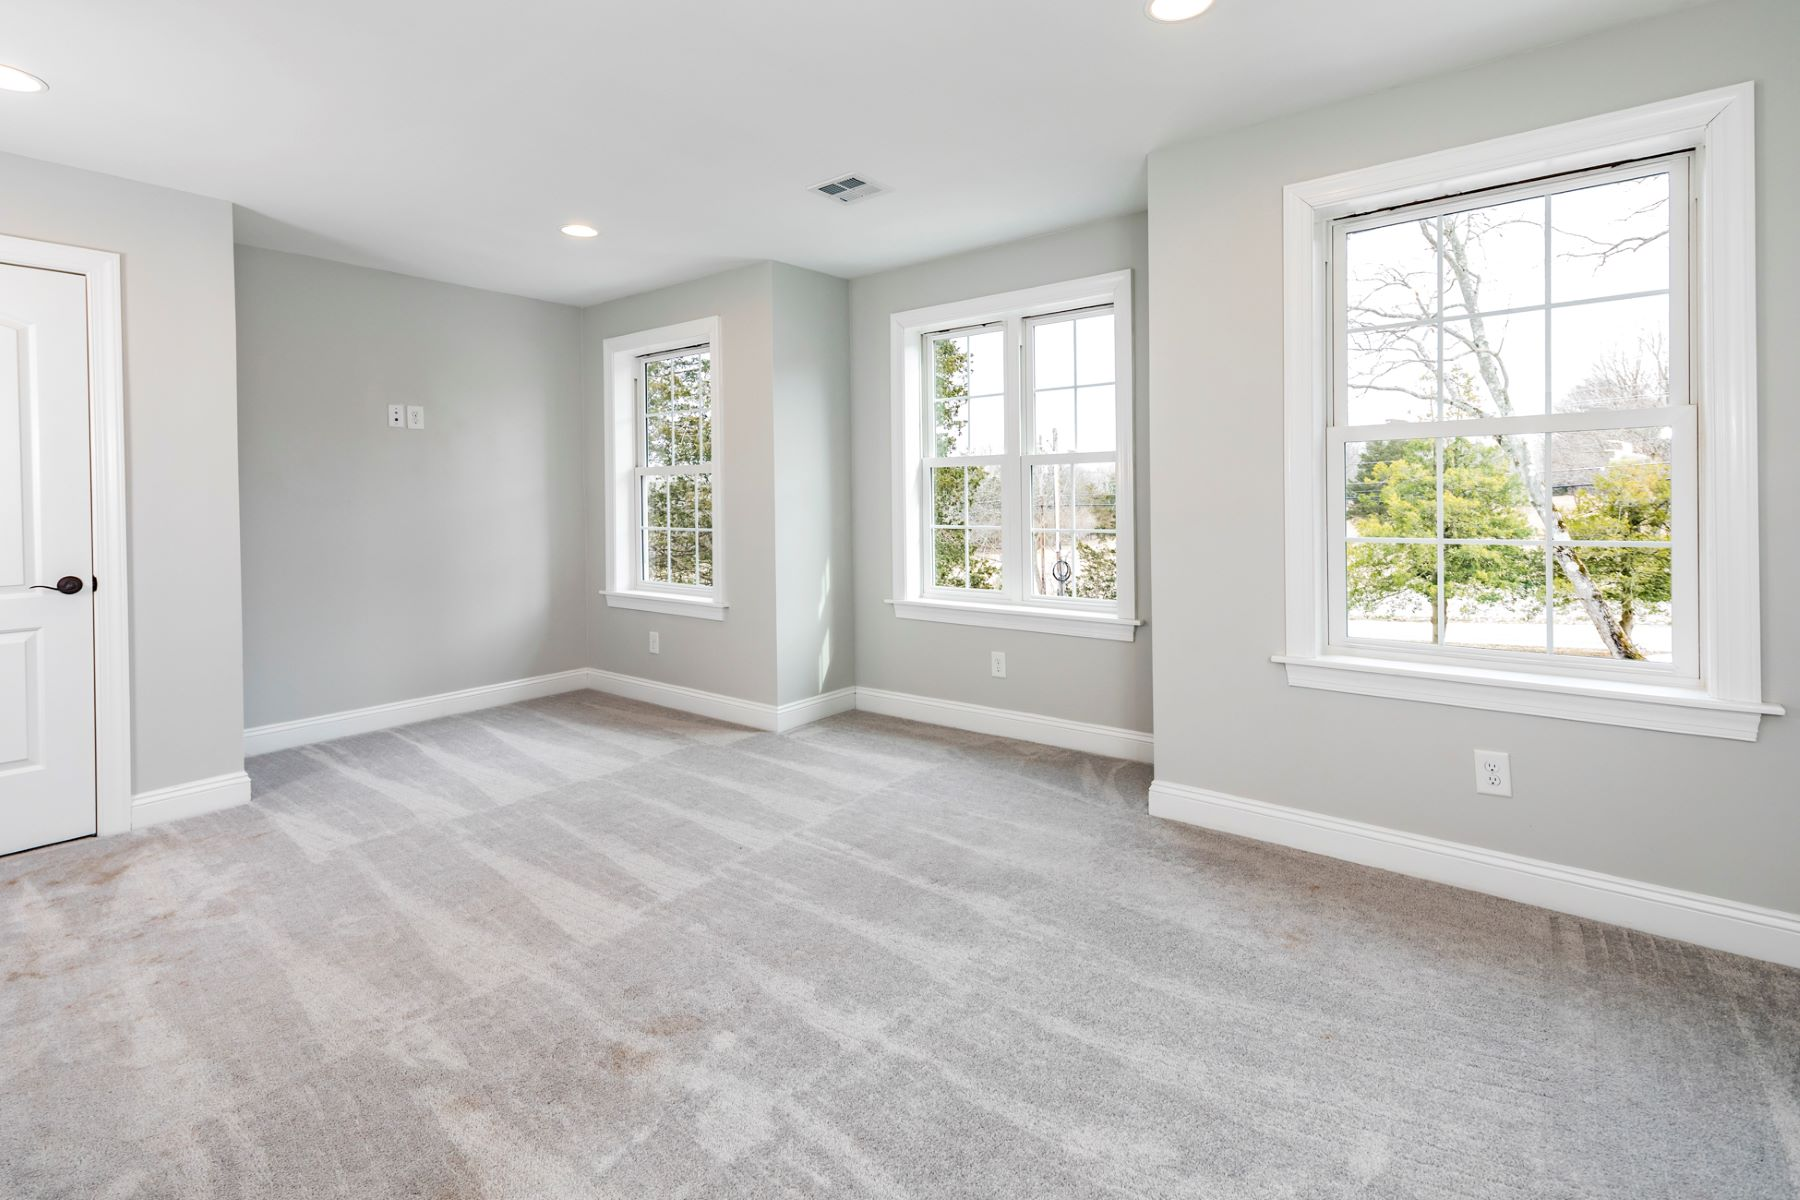 Additional photo for property listing at Custom Built With Luxury In Mind 258 Opossum Road, Skillman, Νιου Τζερσεϋ 08558 Ηνωμένες Πολιτείες